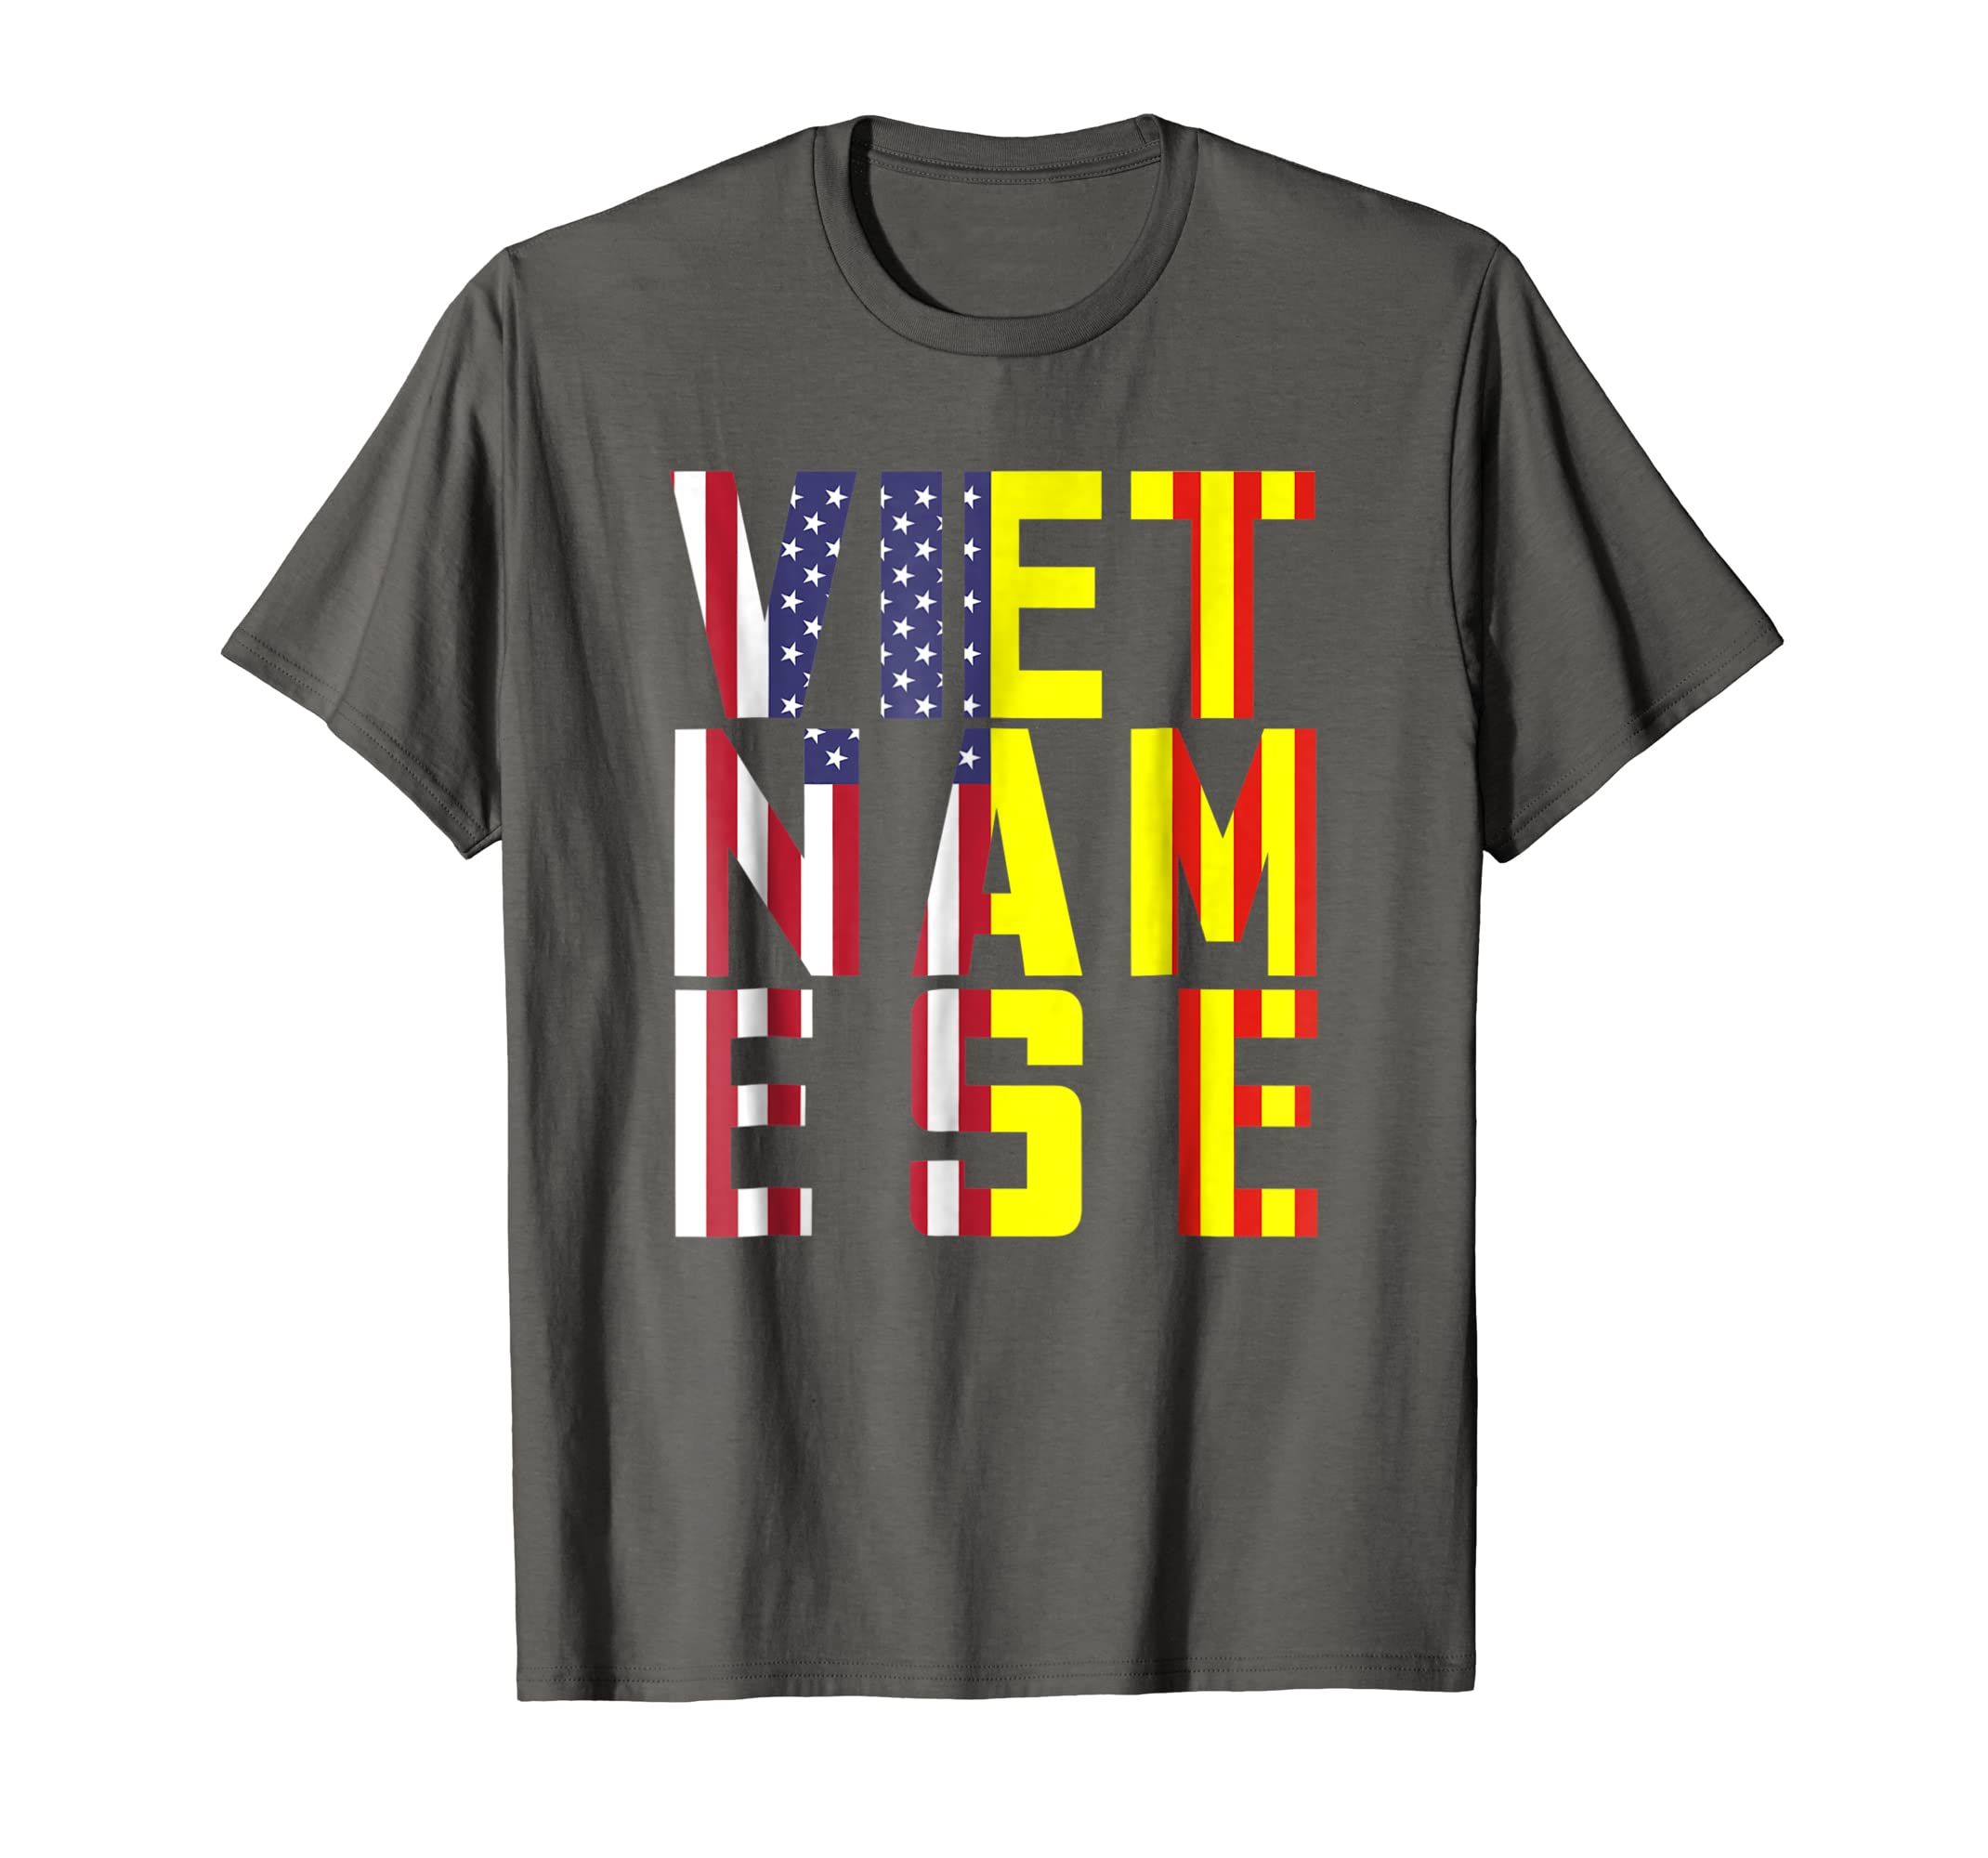 937207e4f Amazon.com: I Am Vietnamese Shirt American South Vietnam Flags T-Shirt:  Clothing